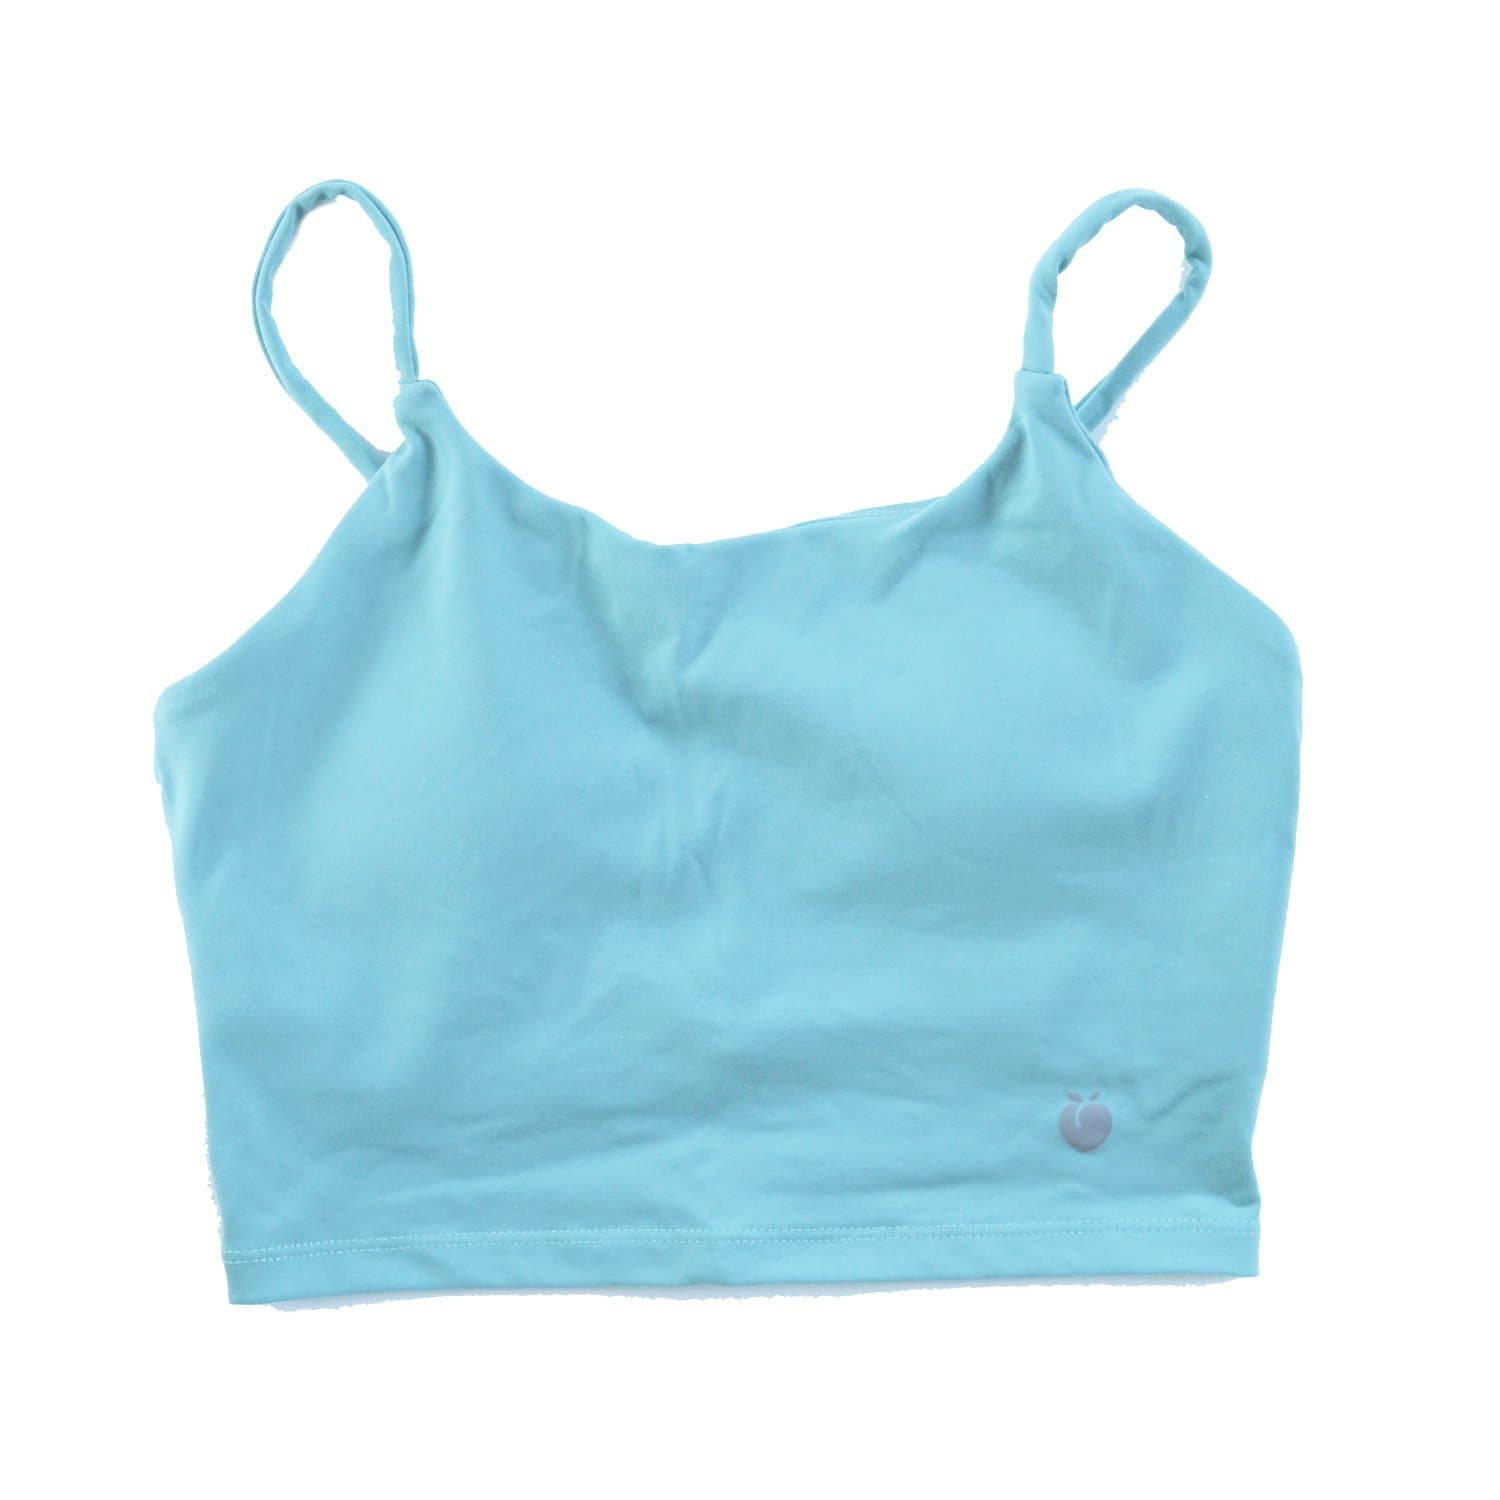 String Crop Top Bra - Turquoise